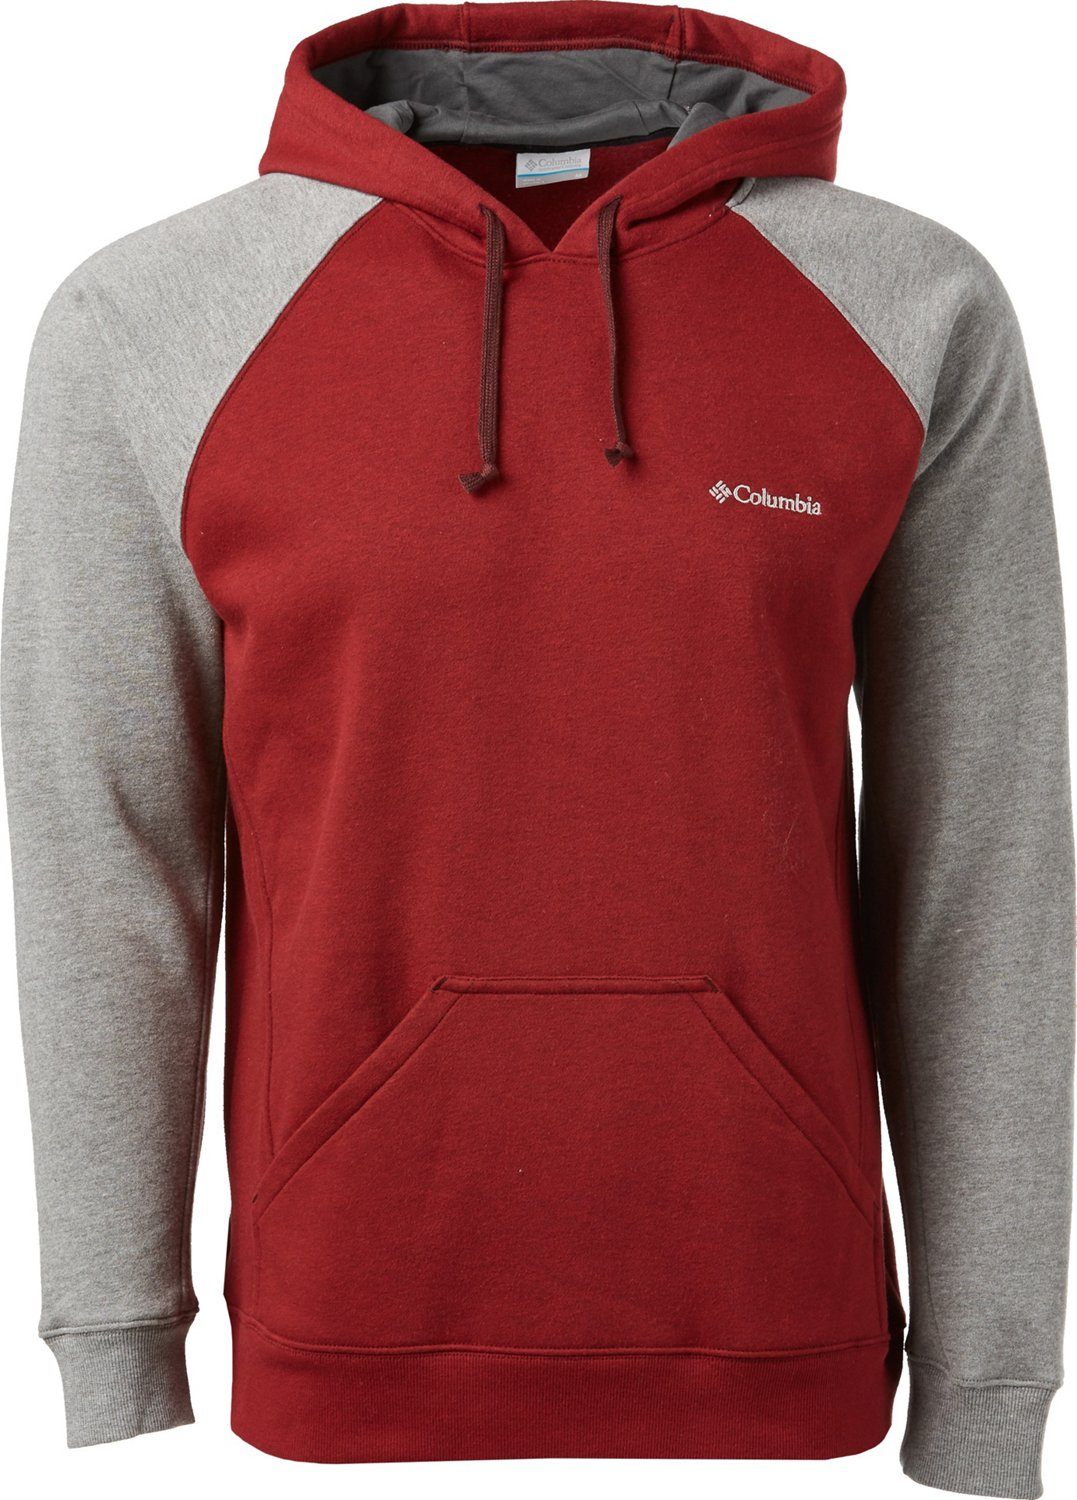 Display product reviews for Columbia Sportswear Men s Hart Mountain Hoodie d95fbdc70a07